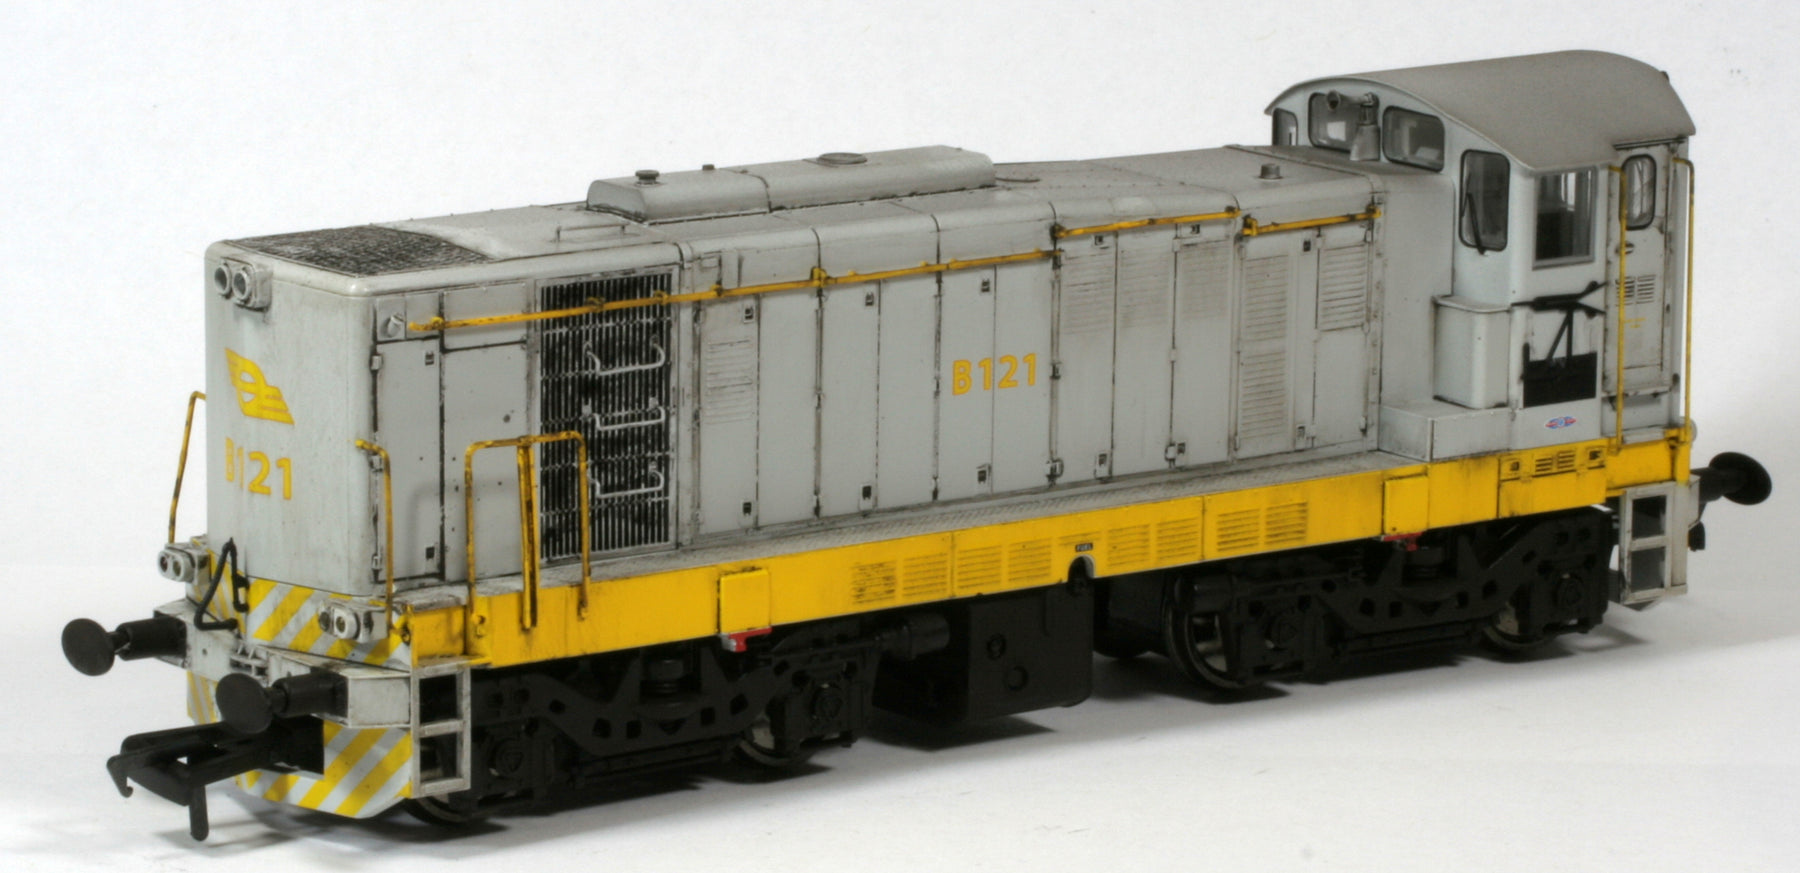 Weathering Murphy Models 121 Class Locomotives With Mick Bonwick